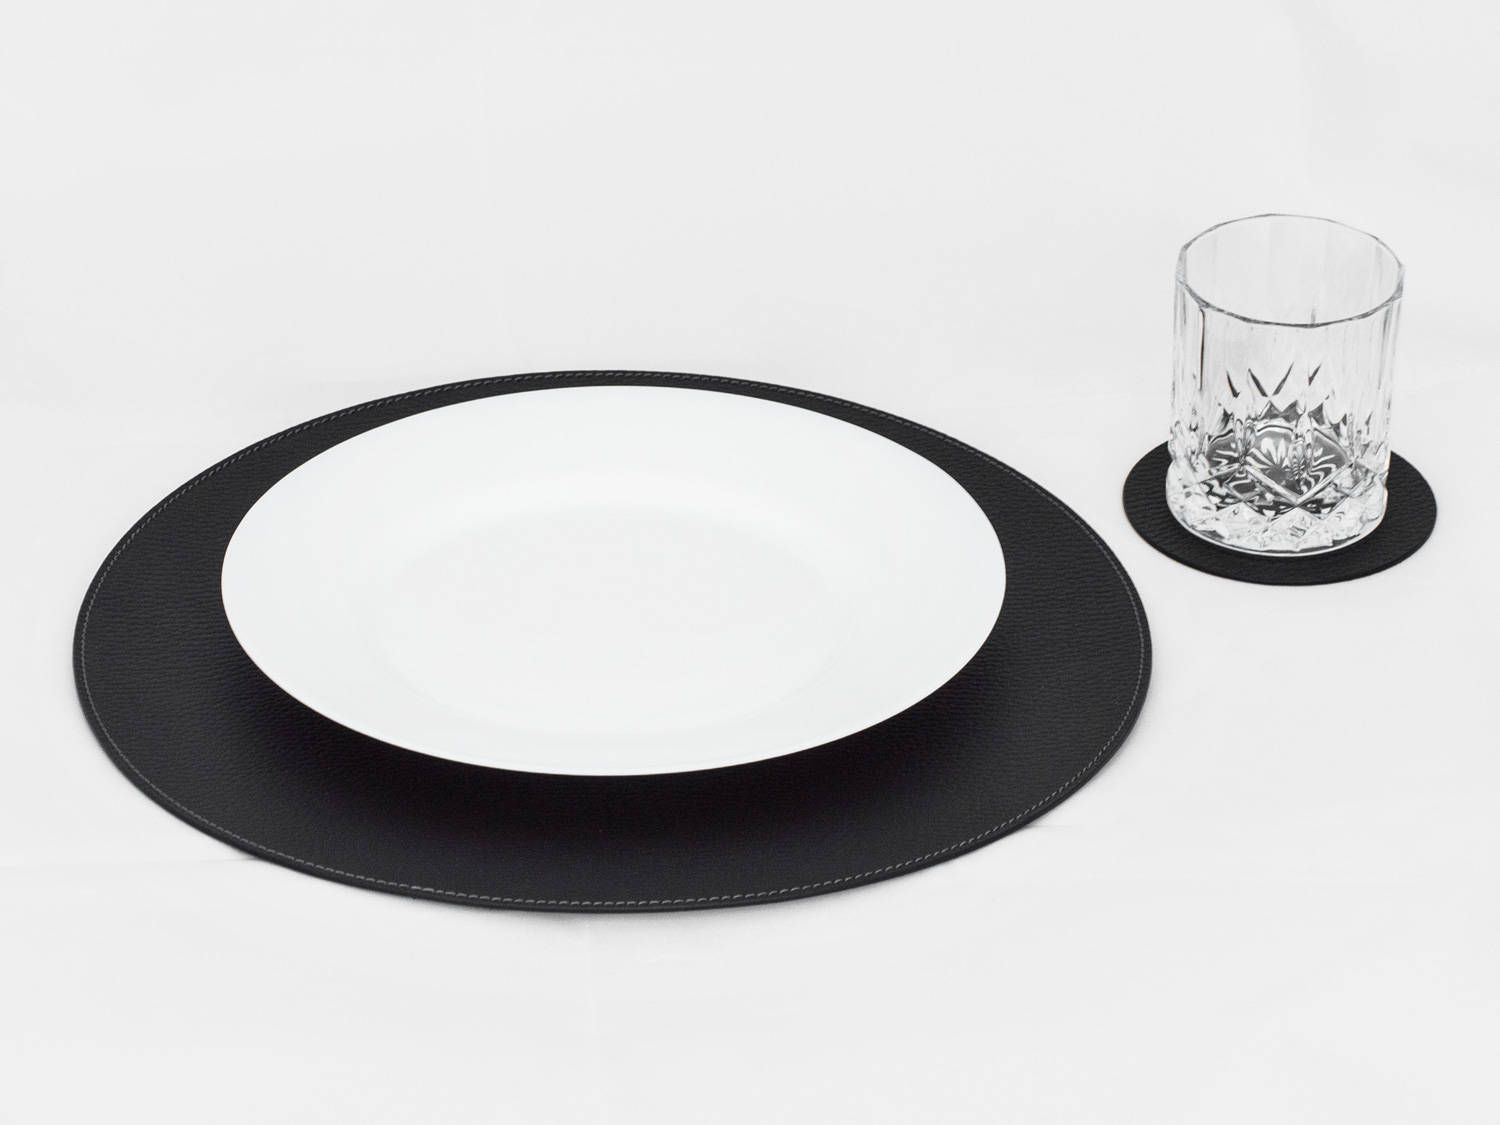 Black Round Placemats Placemats For Round Tables Place Etsy Placemats For Round Table Placemats Black Placemats